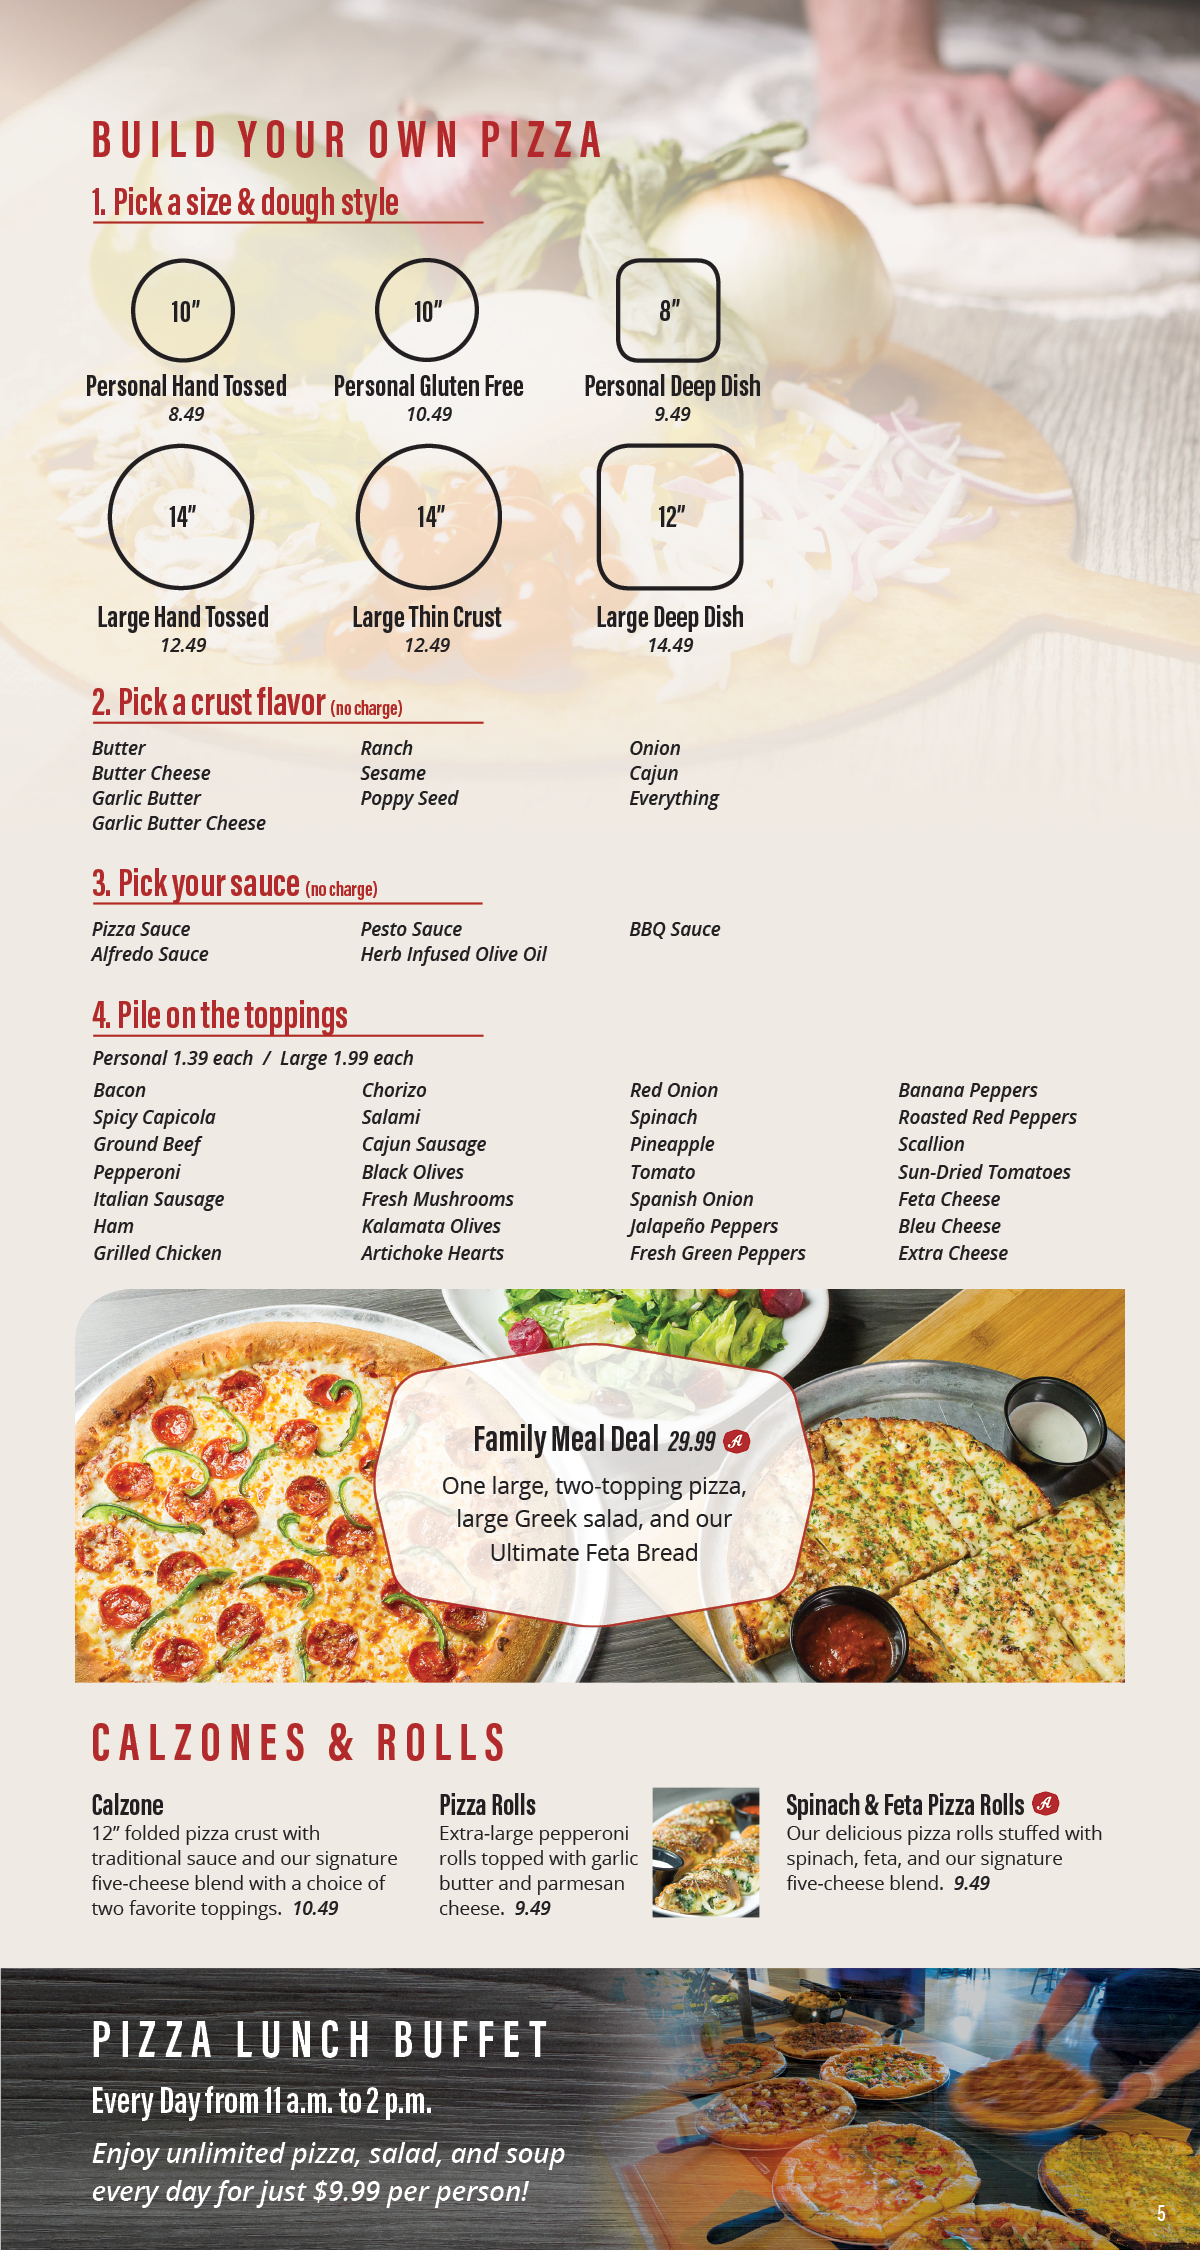 Build Your Own Pizza, Calzones & Rolls